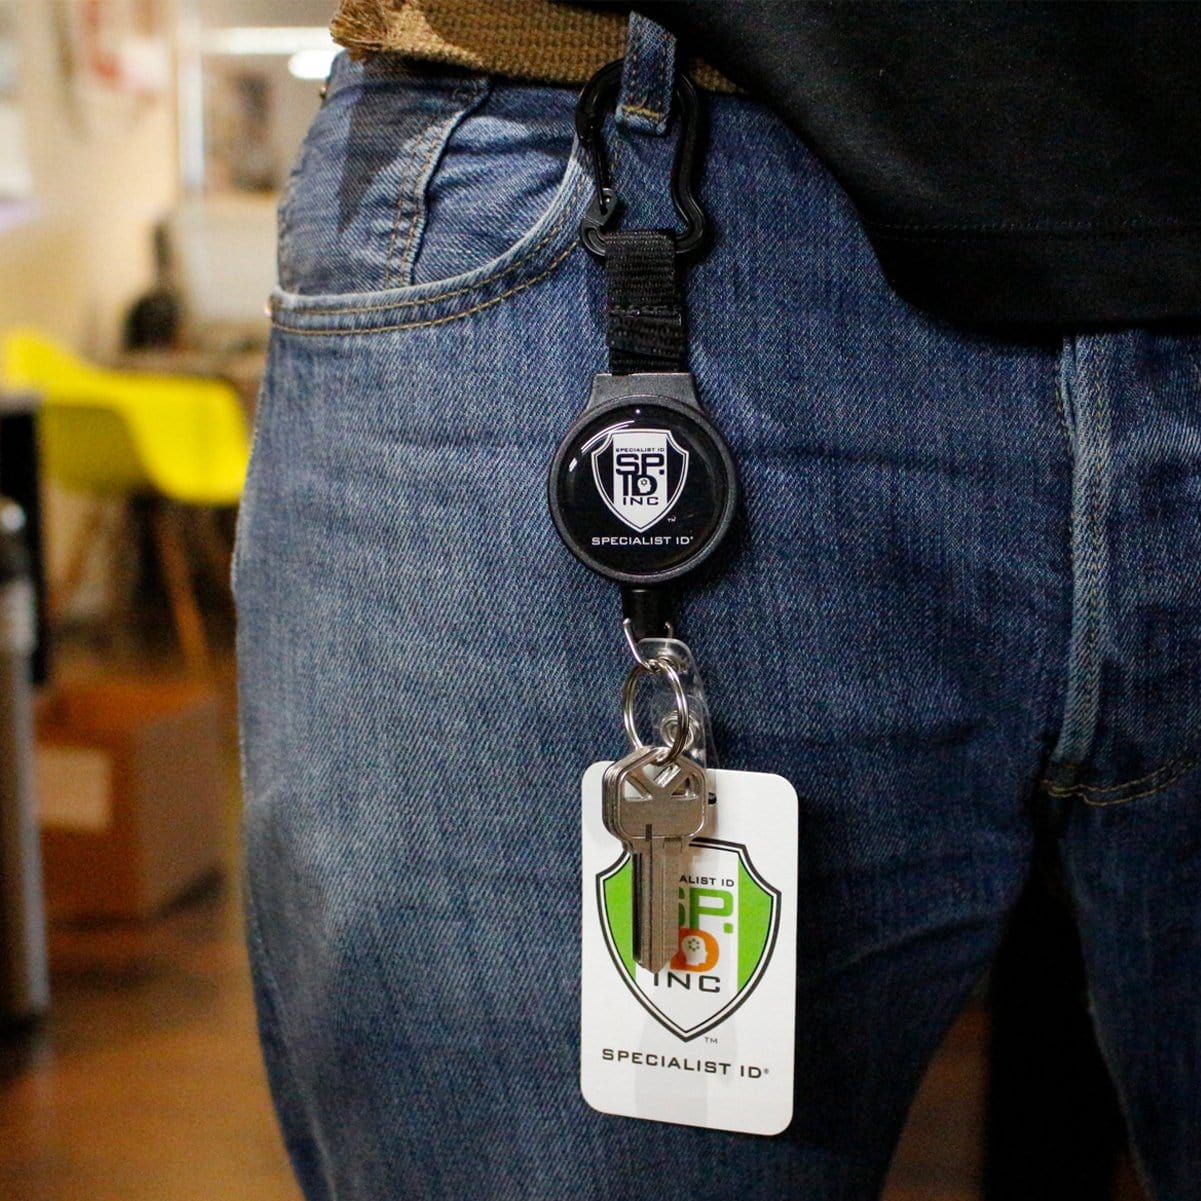 Heavy Duty SPID Key-Bak Mid-Size Carabiner Retractable Badge Reel with Card Strap & Key Ring (SPID-3330)